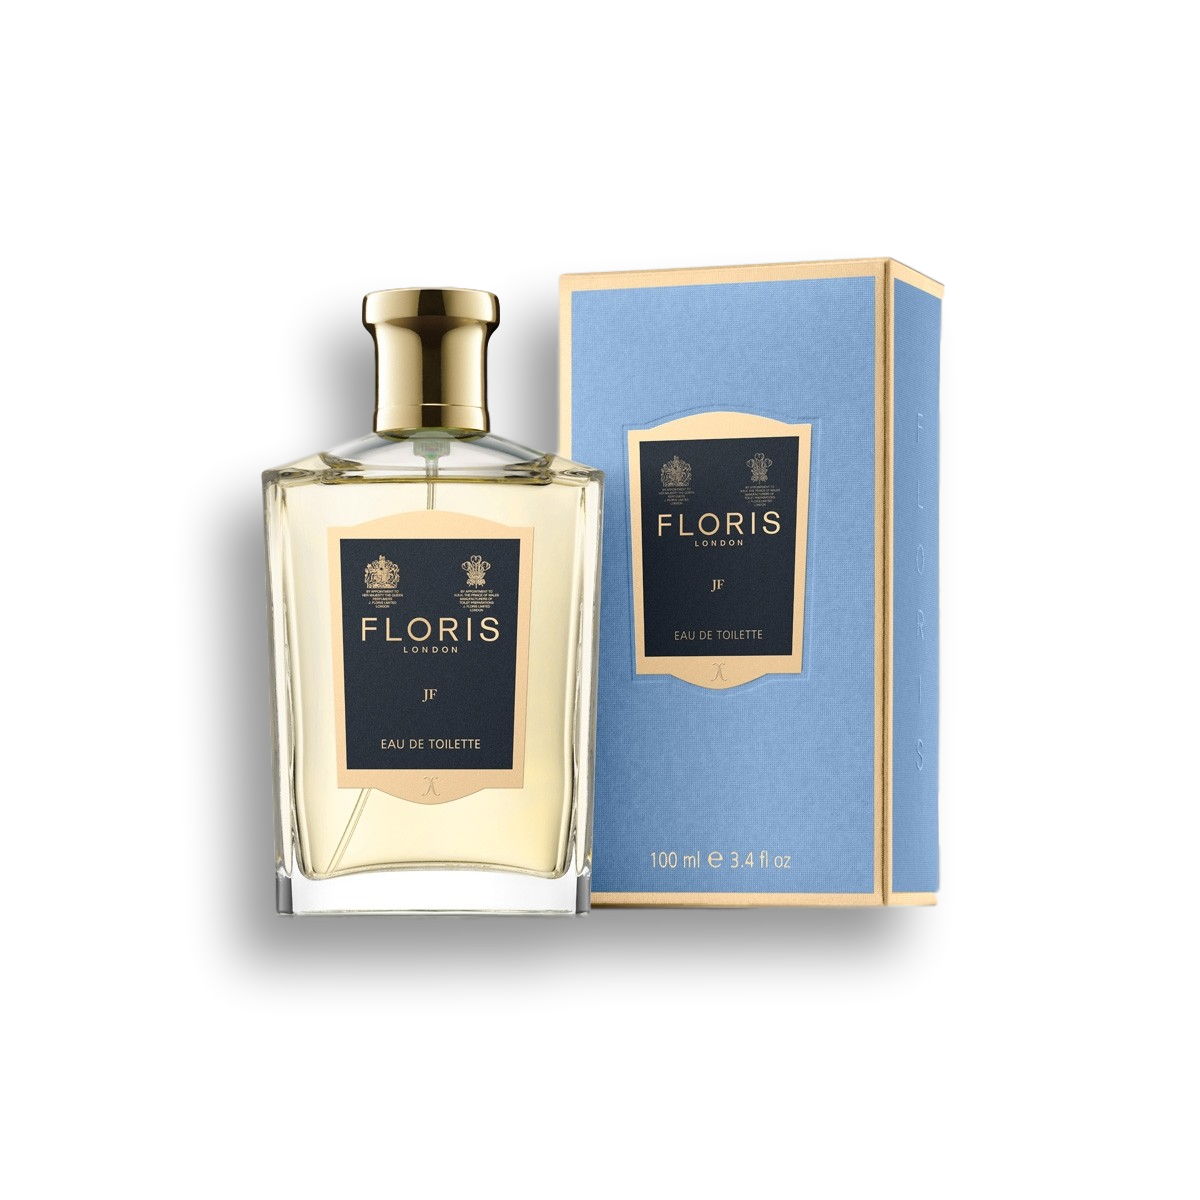 Floris JF Cologne